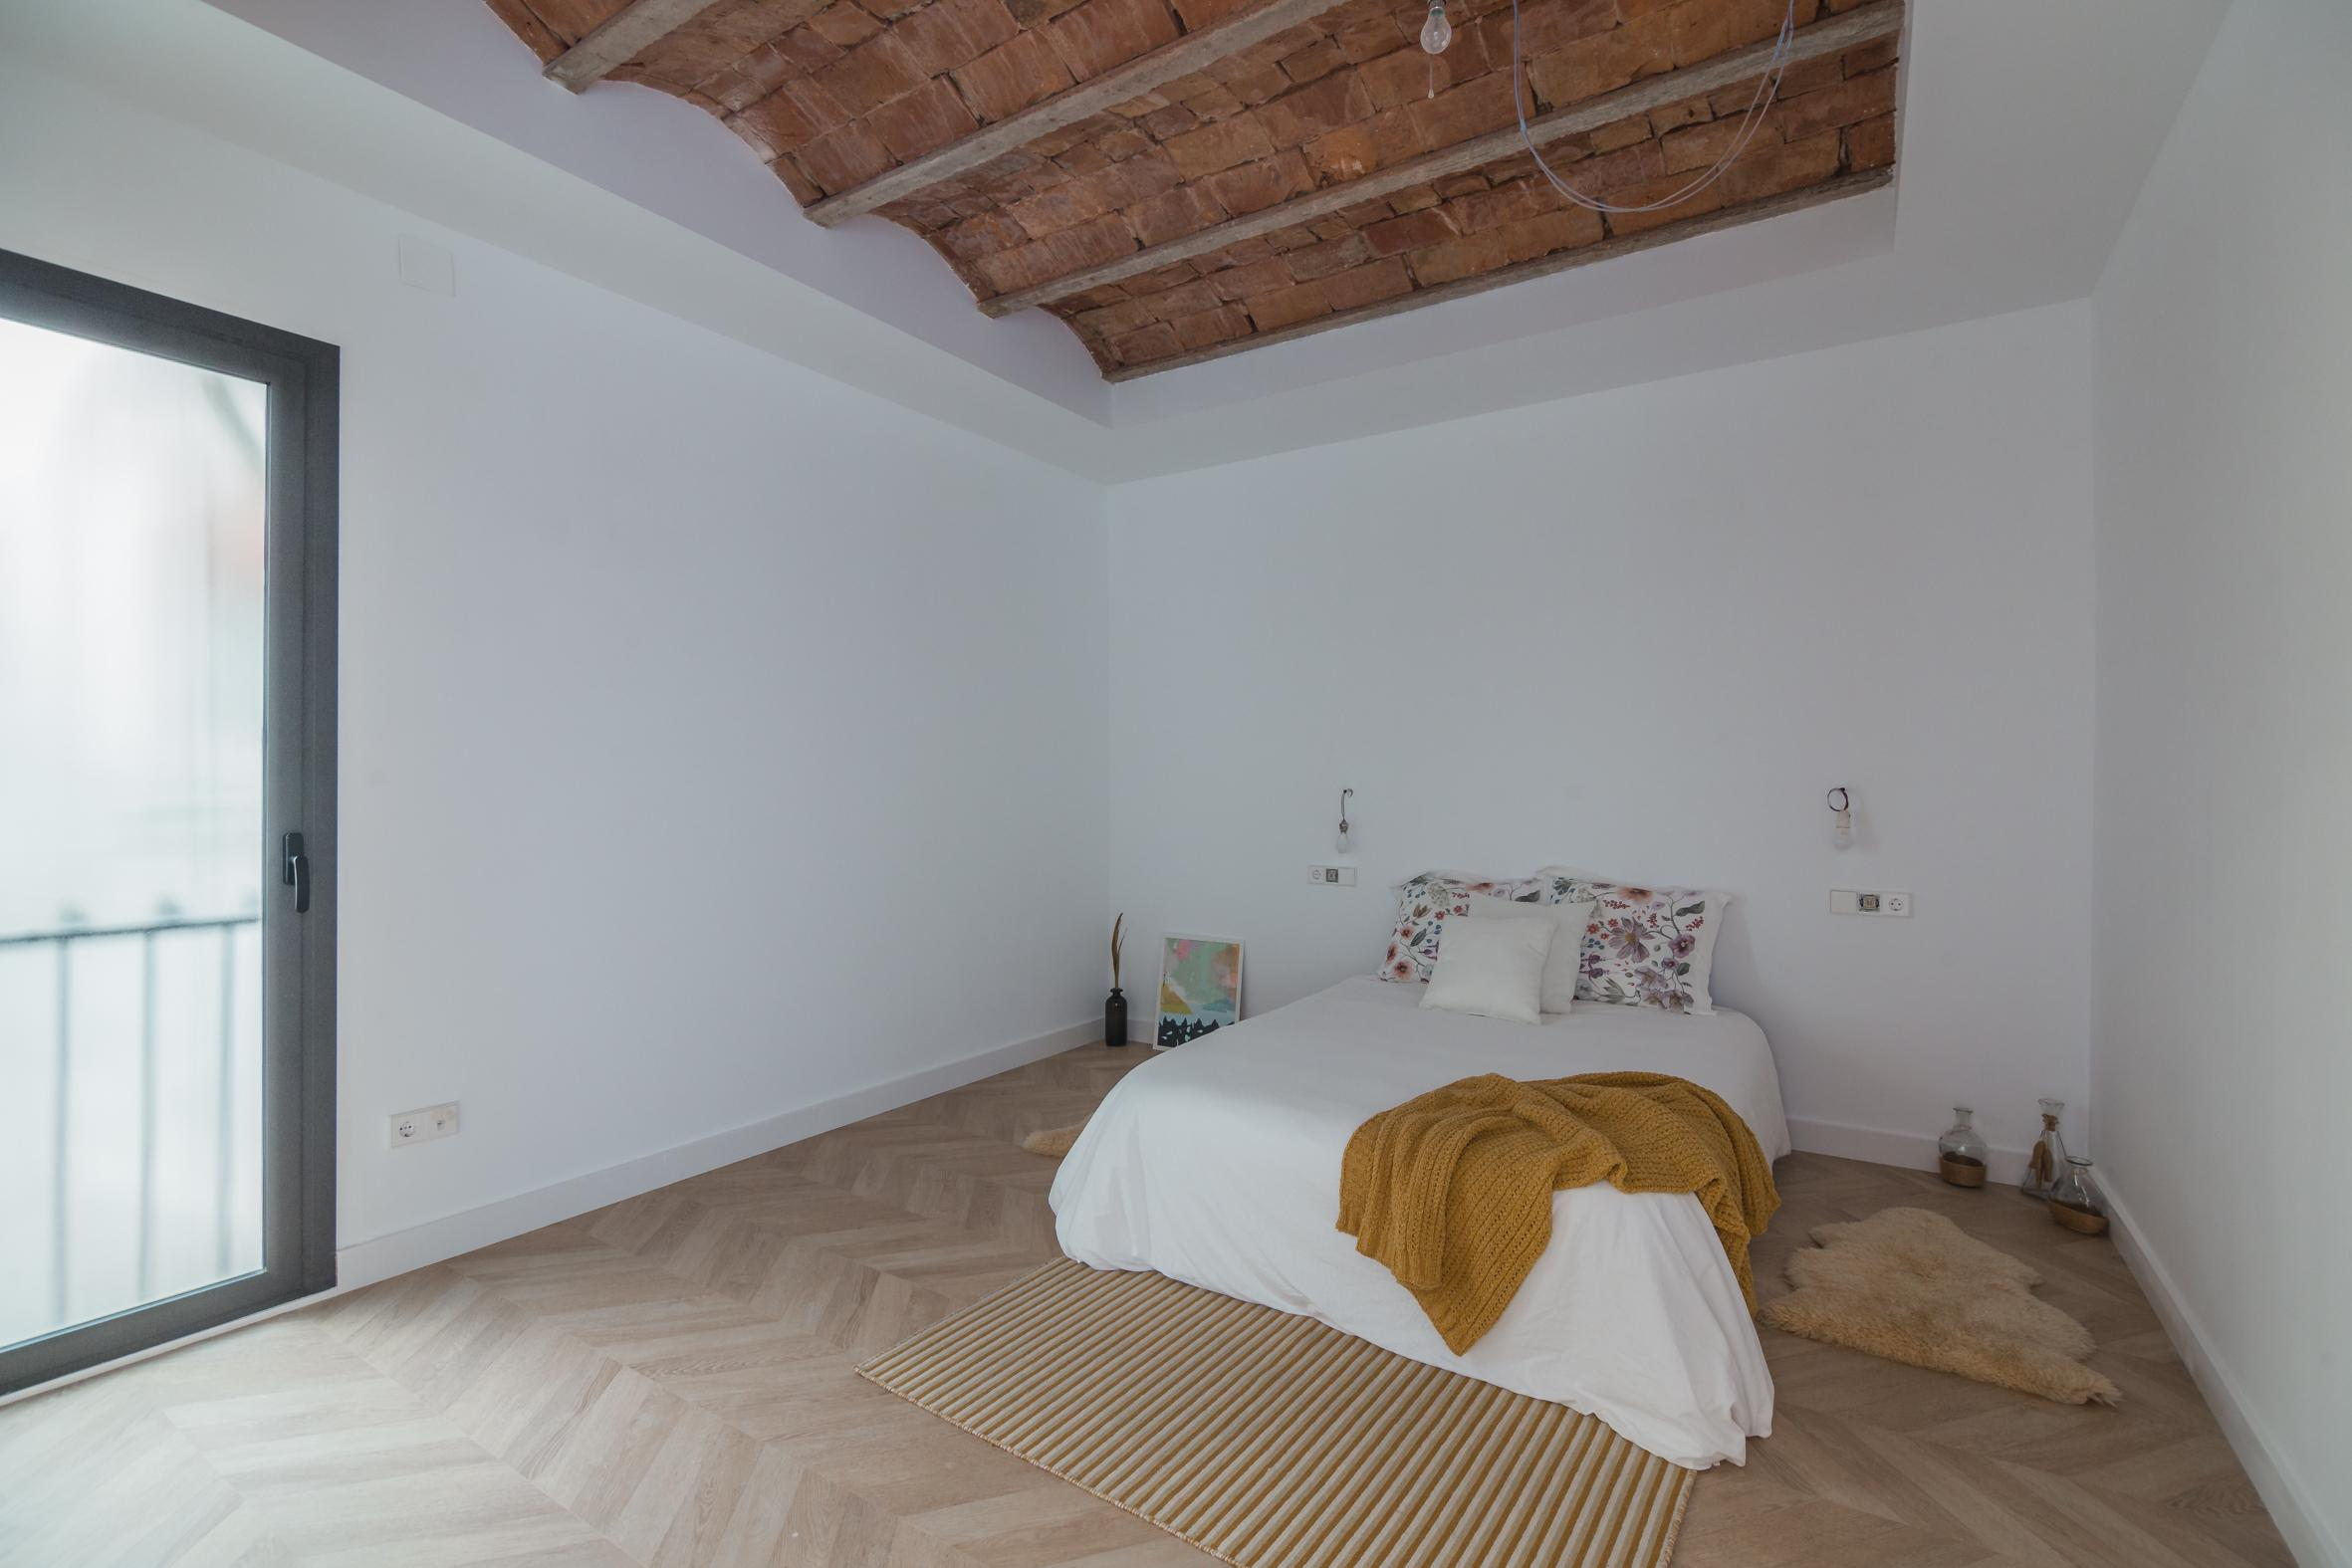 244010 Flat for sale in Ciutat Vella, Barri Gótic 24